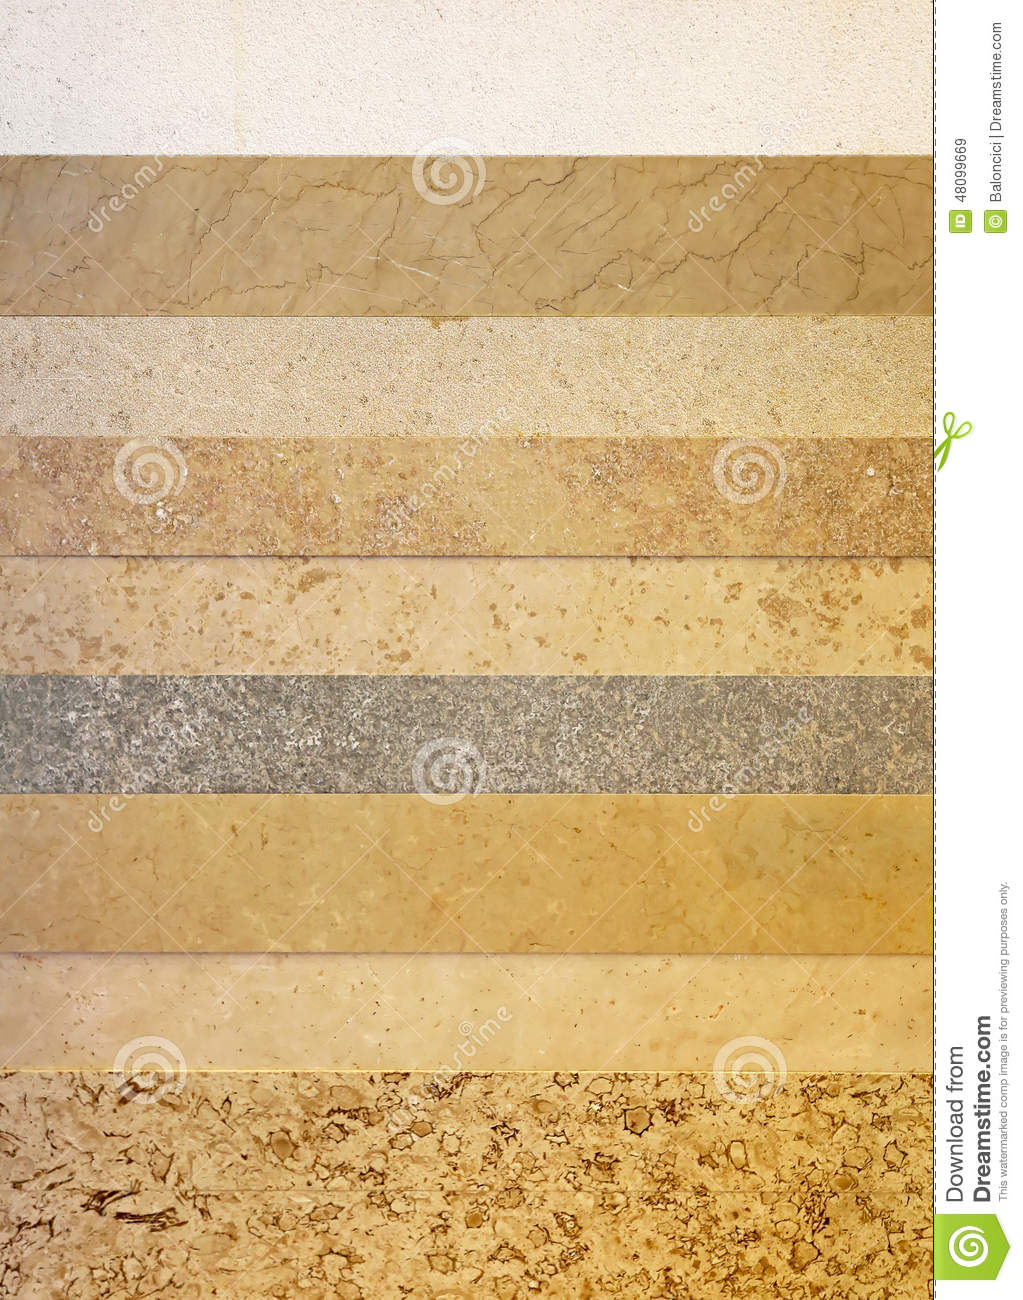 Marble samples stock image. Image of decorative, sample - 48099669